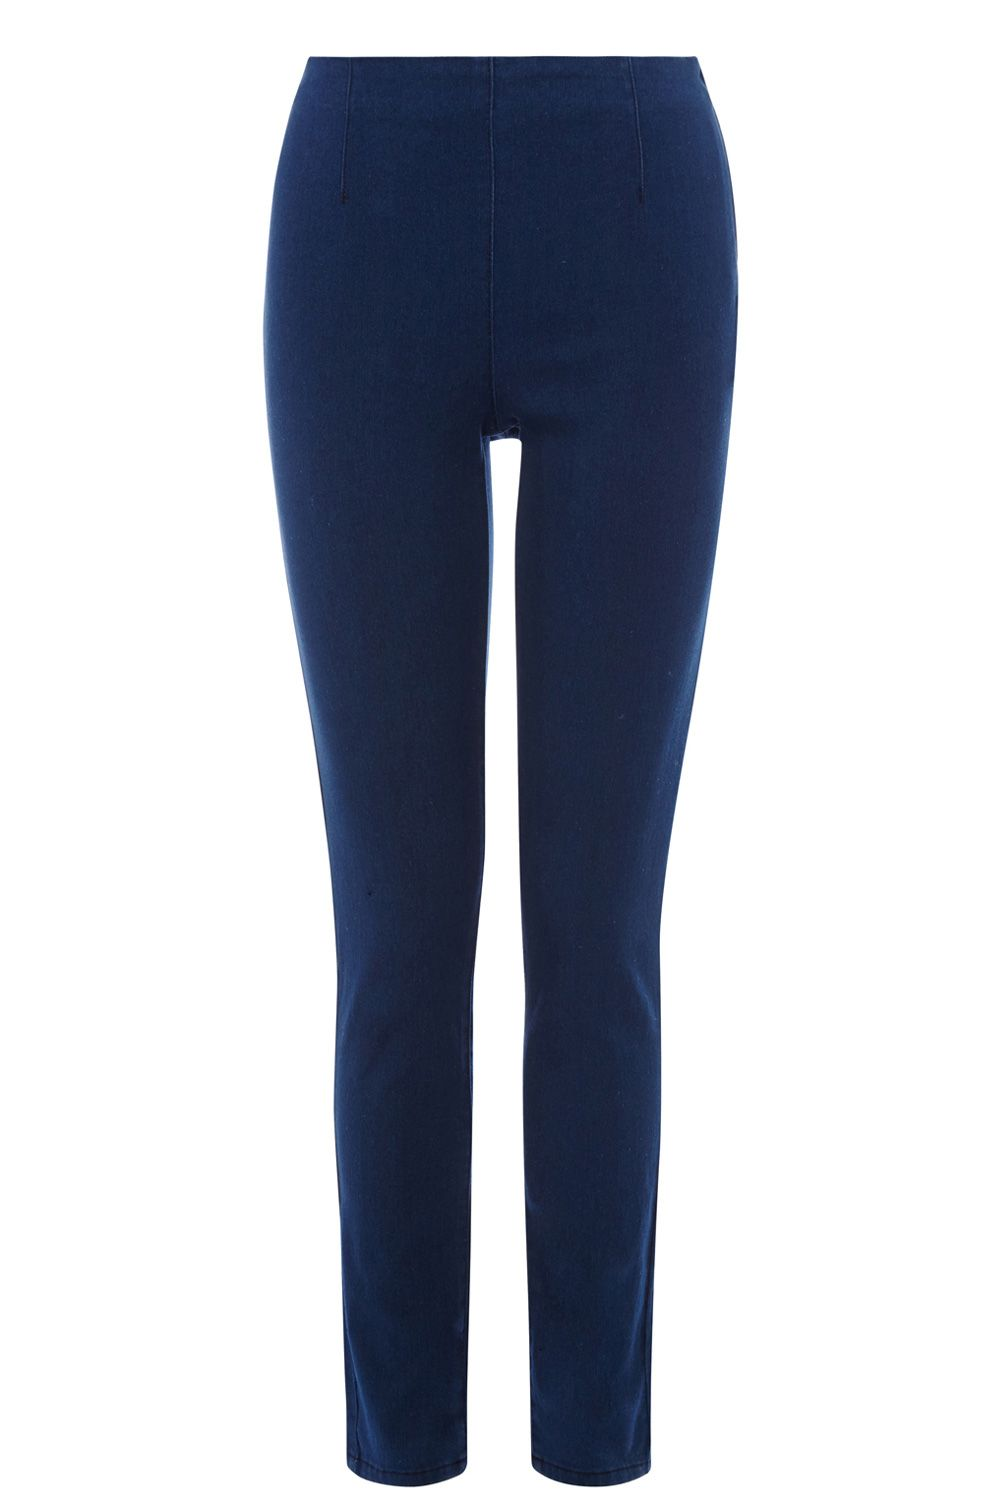 Cara authentic wash side zip jeggings